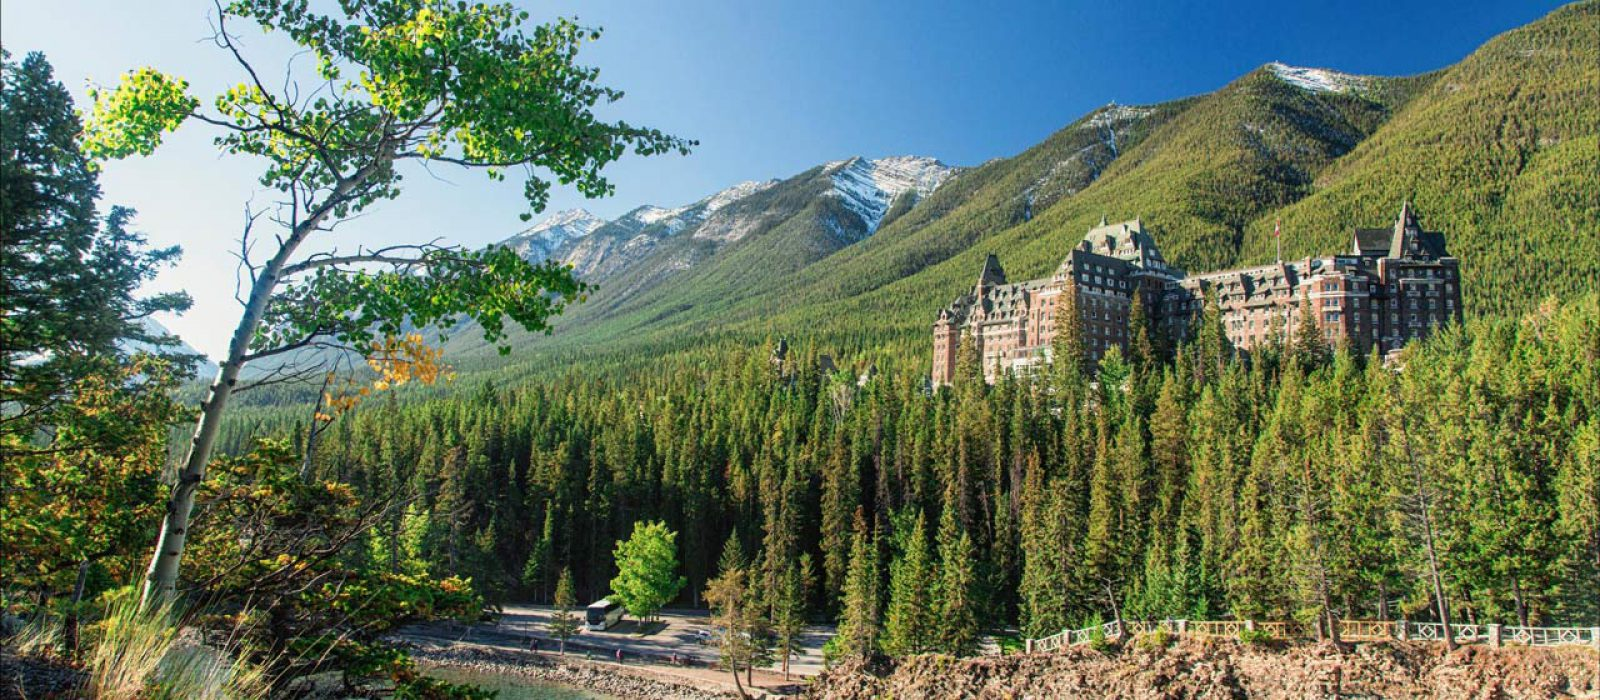 The Fairmont Banff Springs hotel in the forest near the Bow River